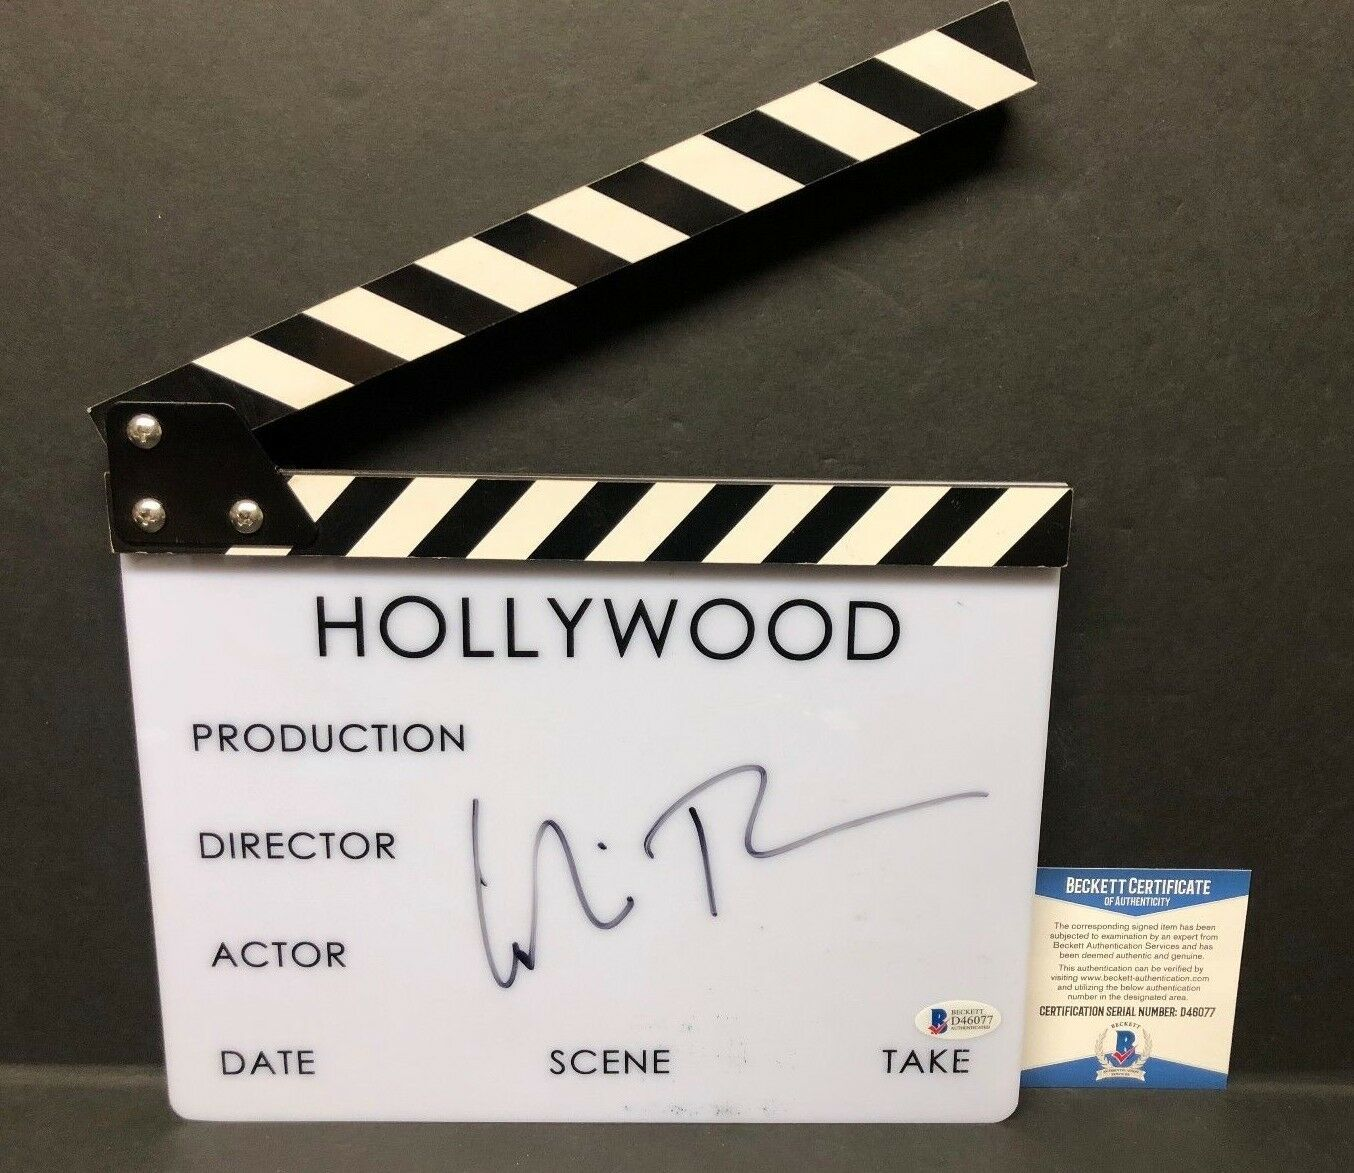 Colin Trevorrow Signed Director Clapperboard *Star Wars Episode IX Director BAS